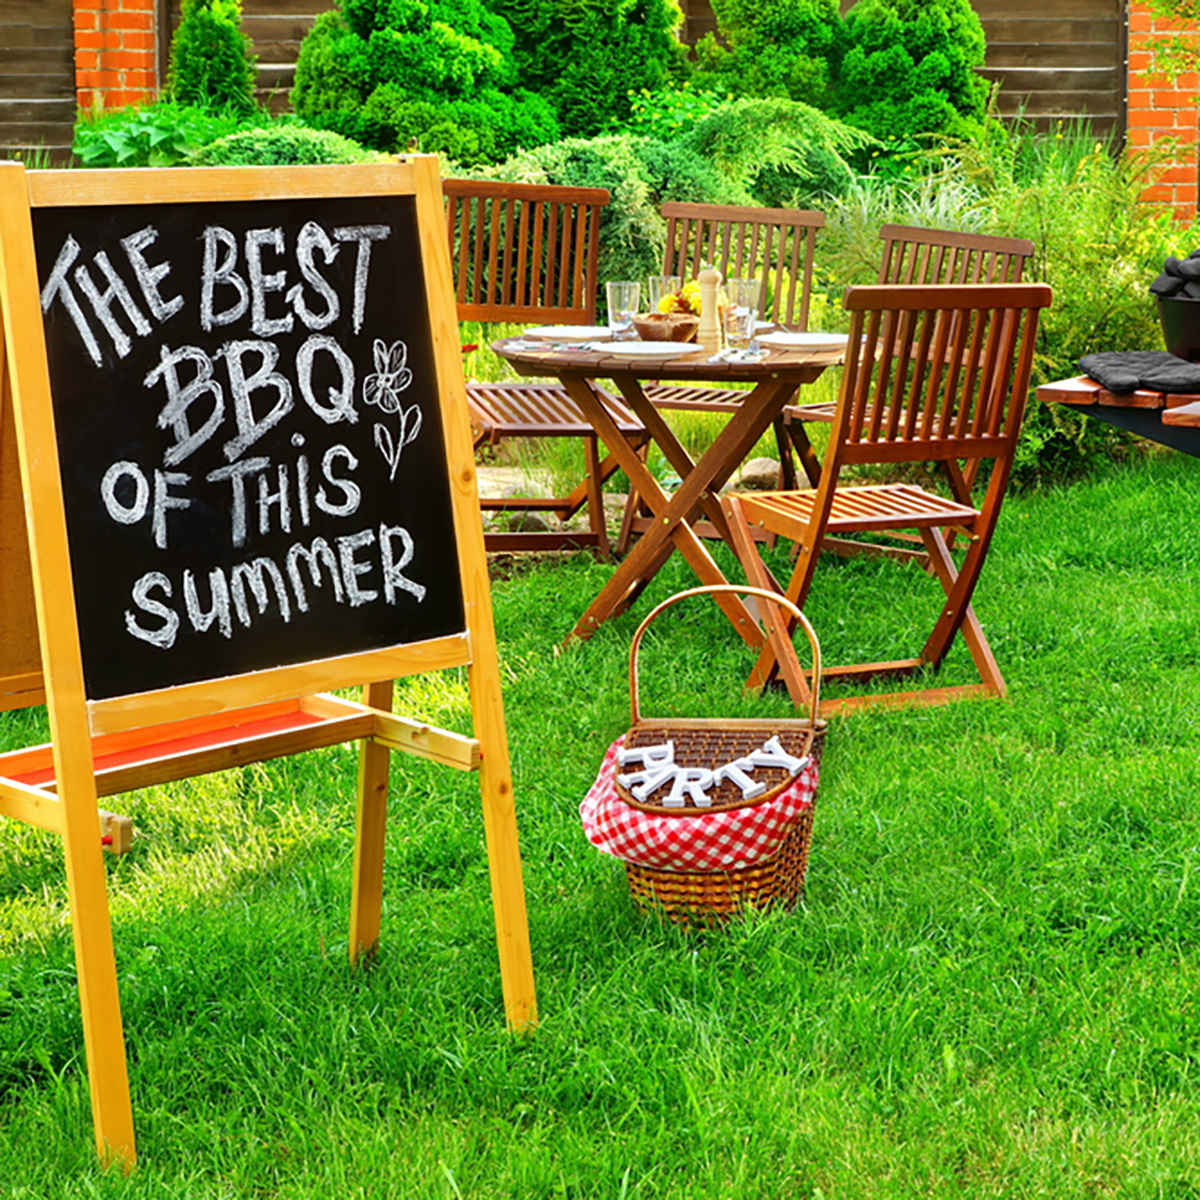 11 Insanely Smart Ideas For Your Backyard Party Taste Of Home with regard to 15 Awesome Initiatives of How to Make Outdoor Ideas For Backyard